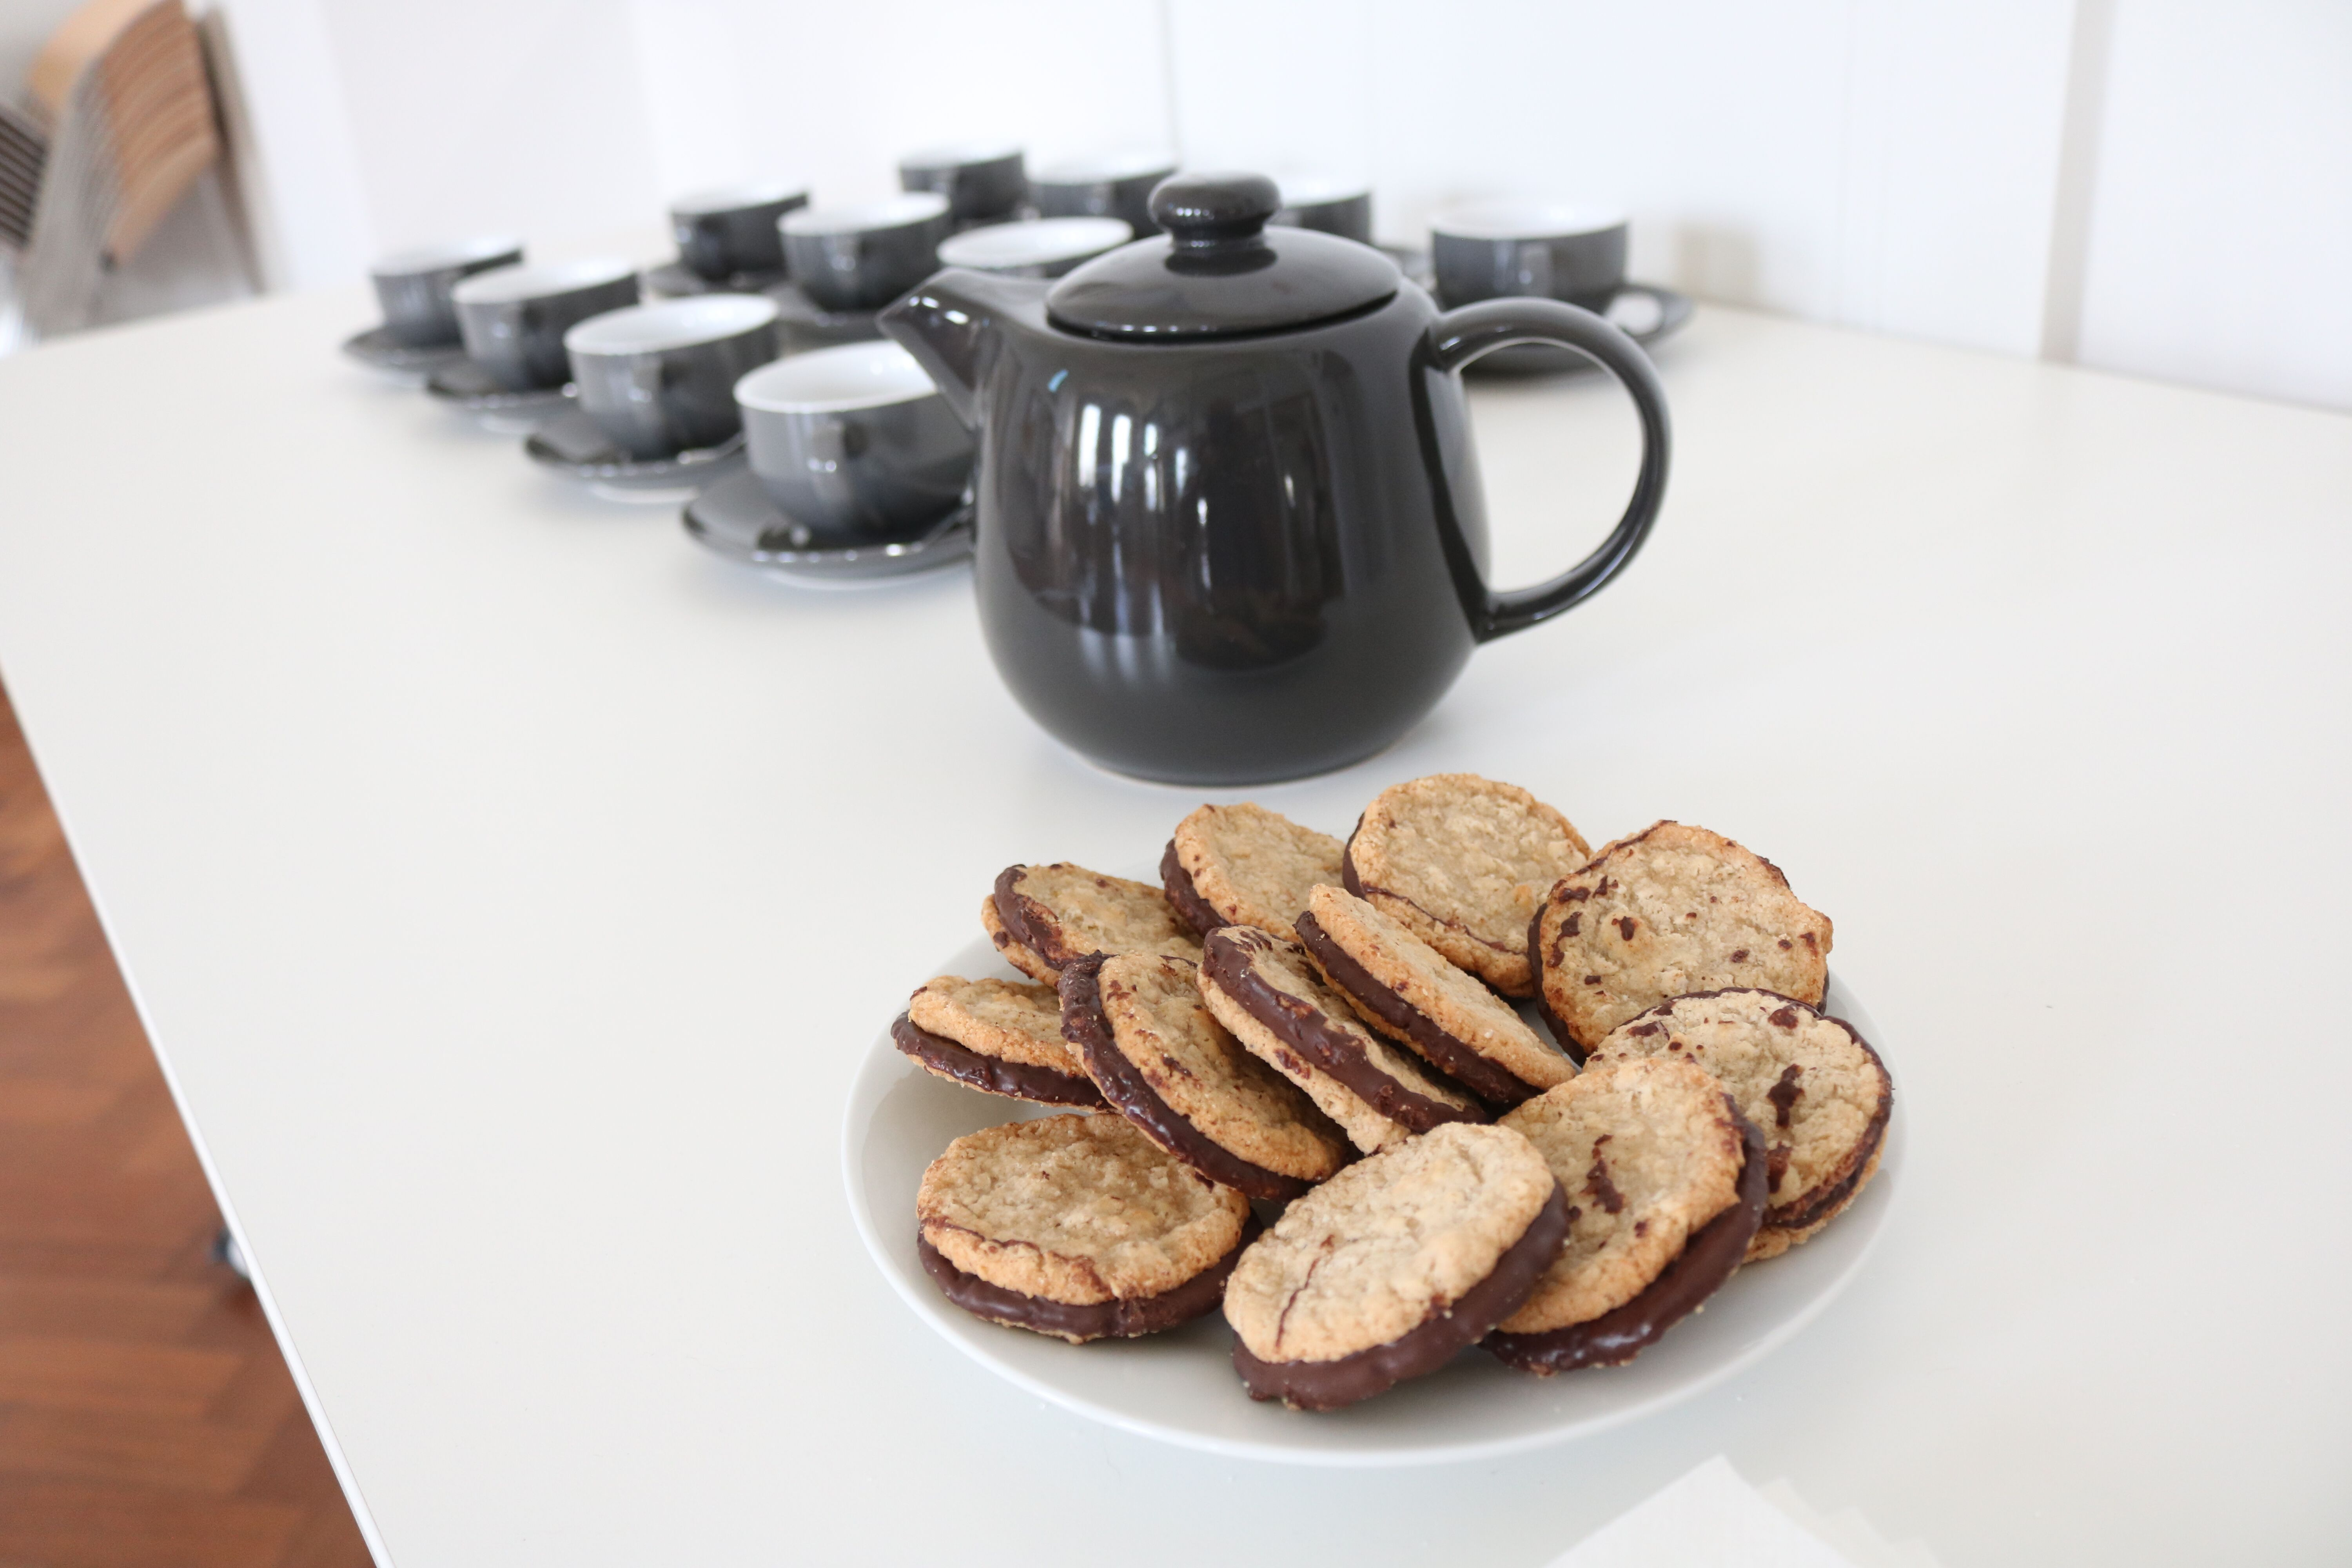 Tea and Biscuits